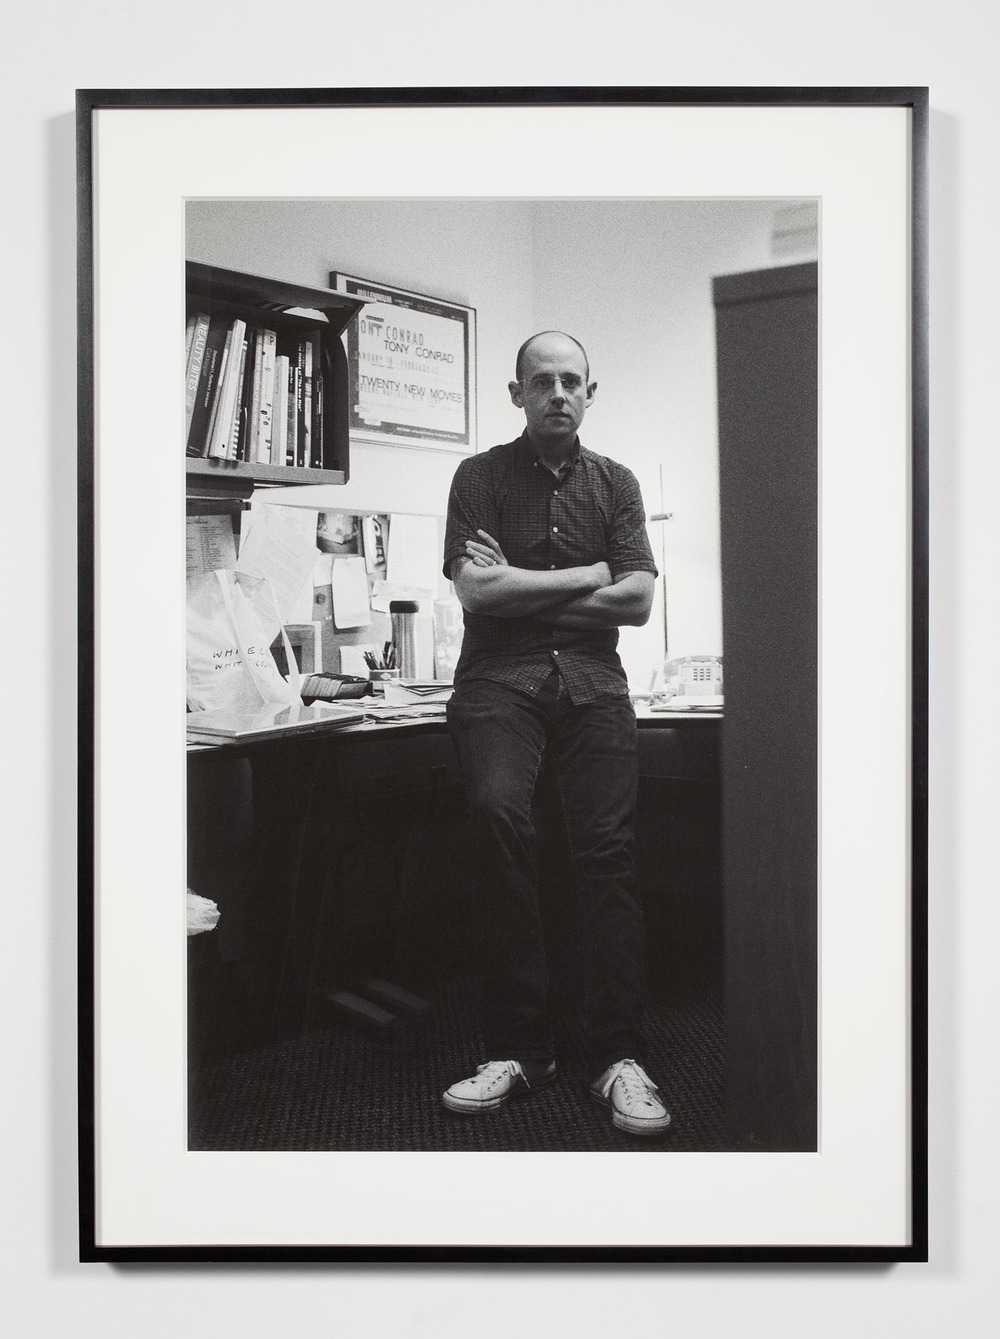 University Museum Associate Curator, Ann Arbor, Michigan, September 19, 2008    2011   Epson Ultrachrome K3 archival ink jet print on Hahnemühle Photo Rag paper  36 3/8 x 26 3/8 inches   Industrial Portraits, 2008–